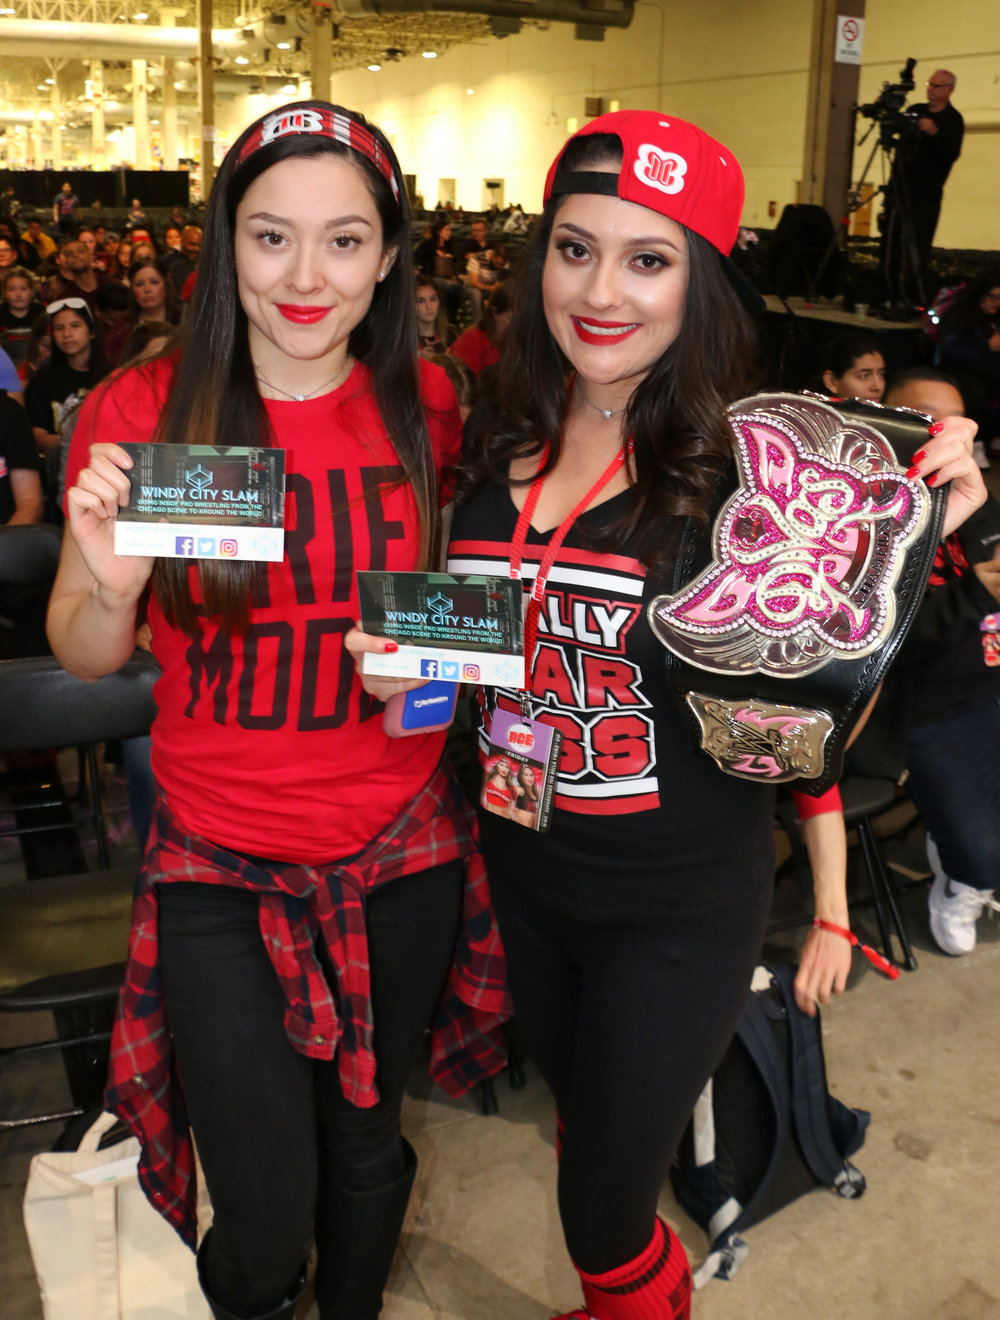 Fans of the Bella Twins pose before Nikki and Brie appeared for their WWE panel.